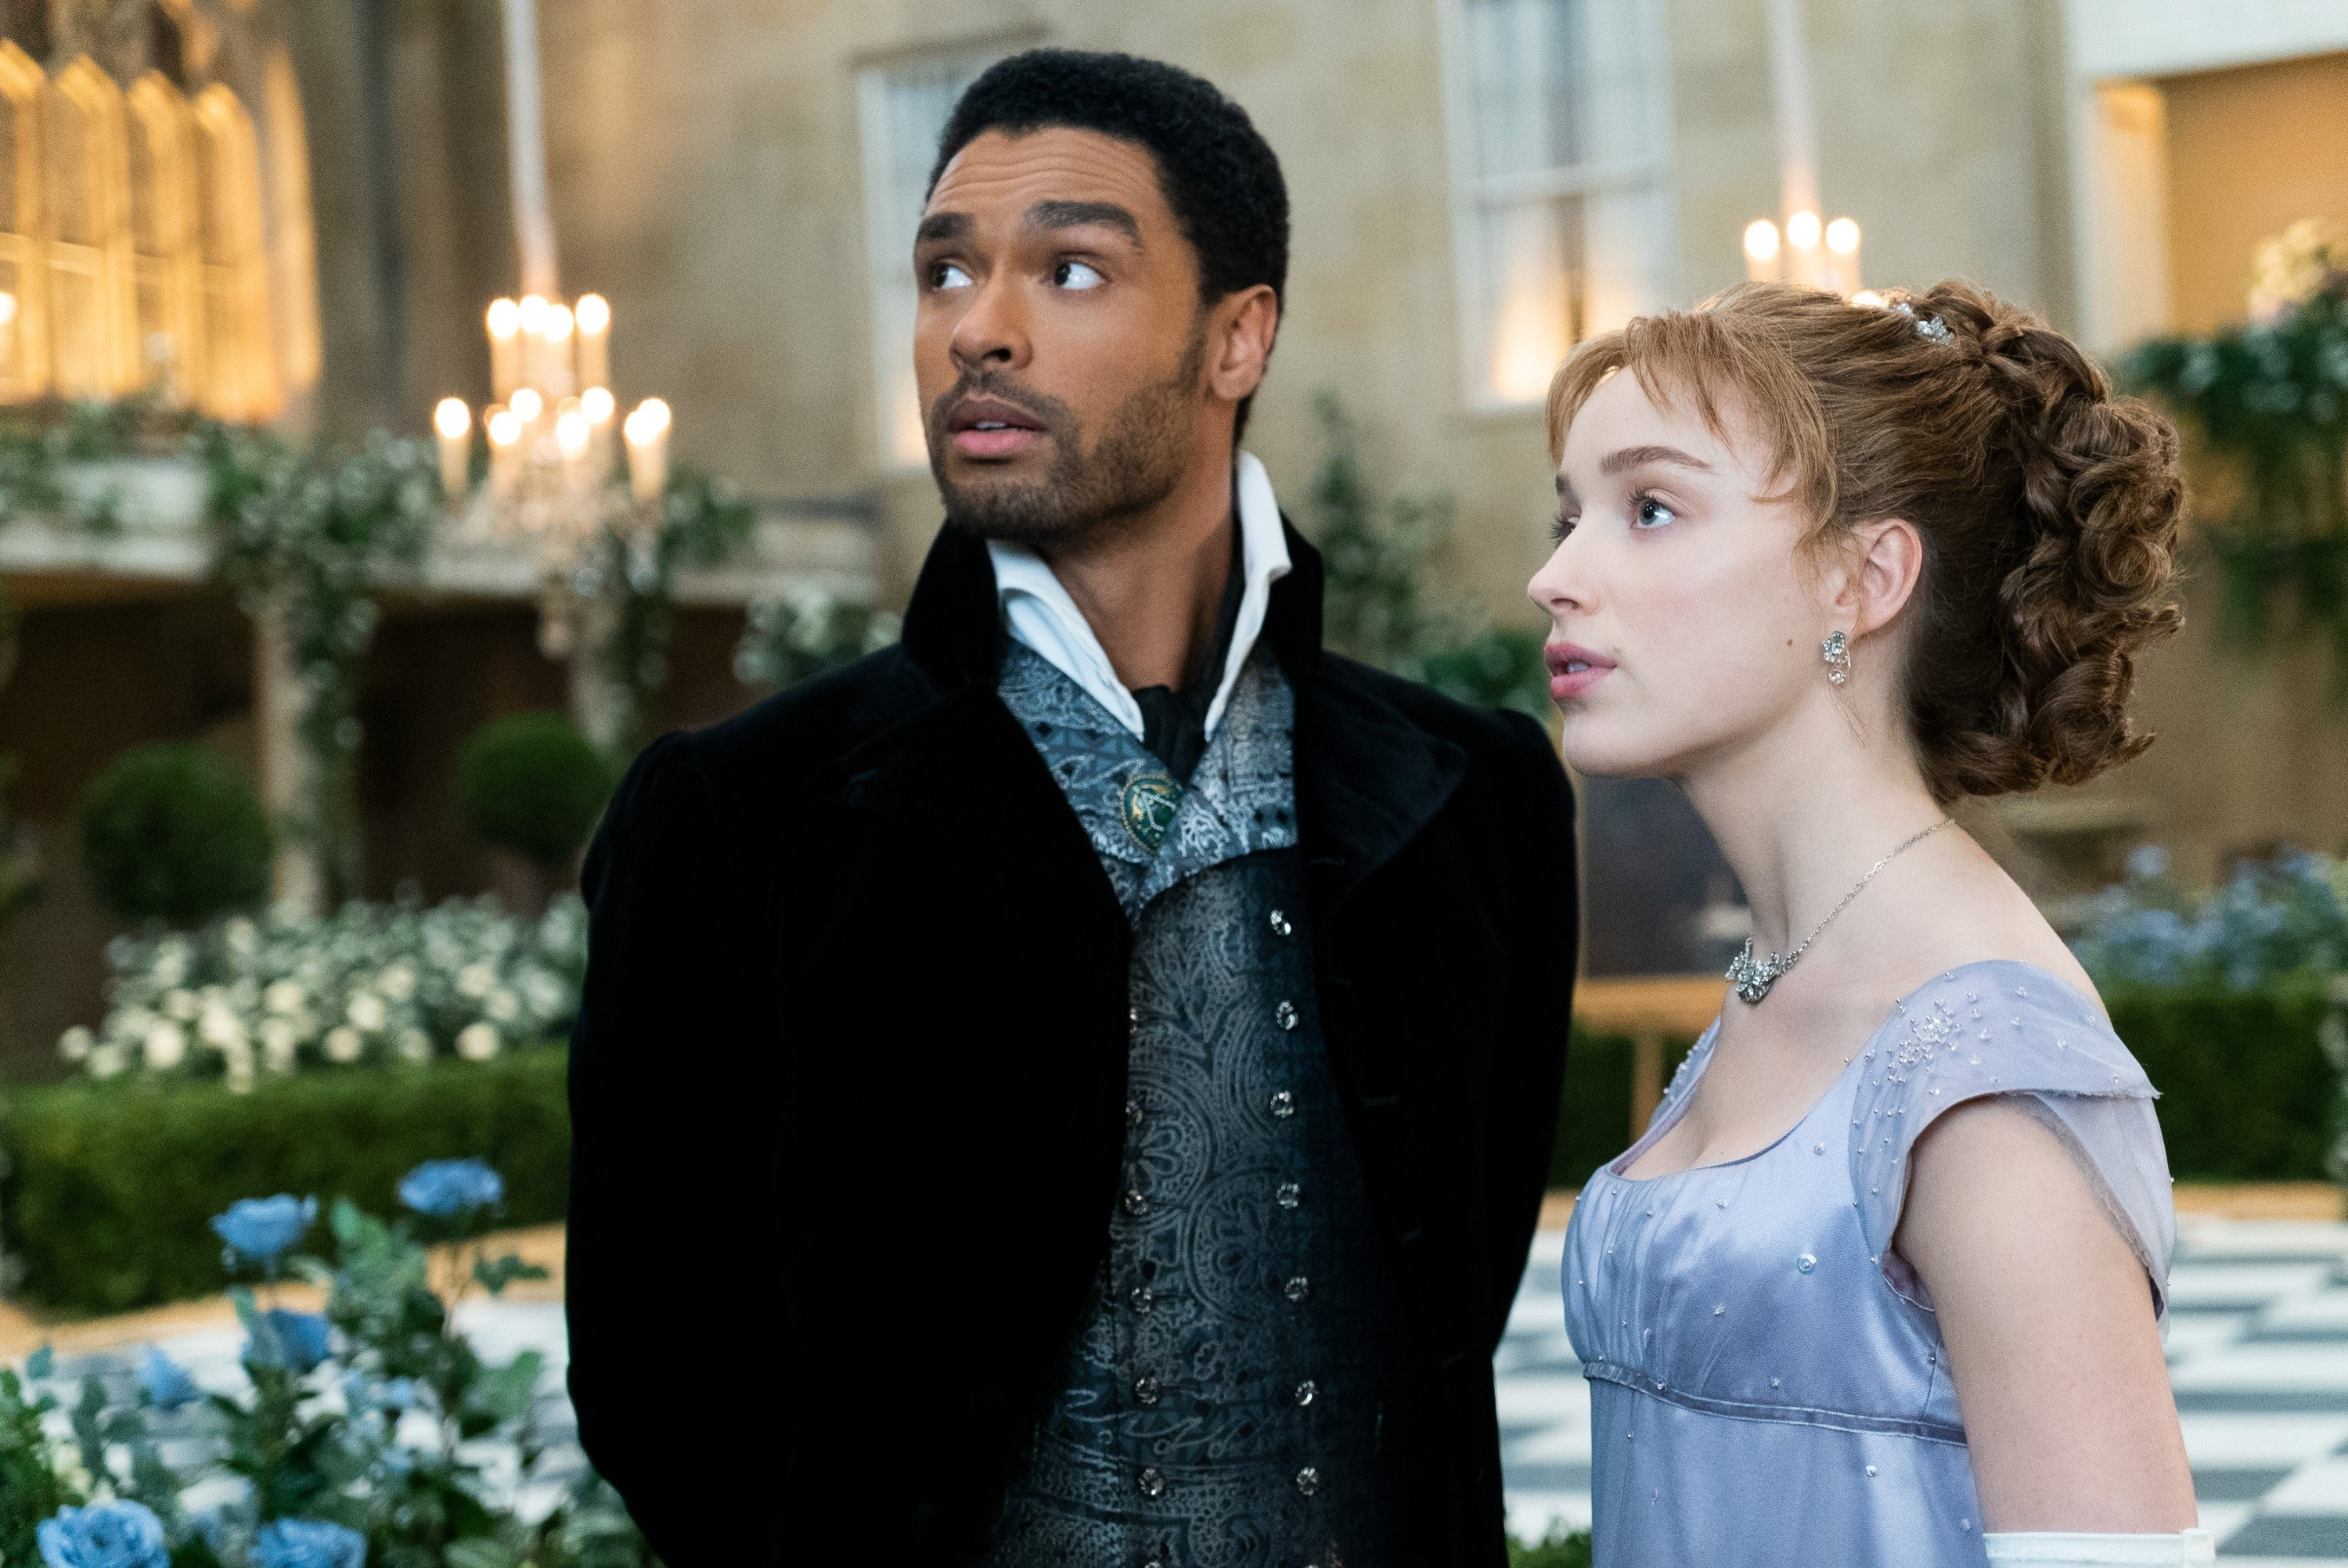 Regé-Jean Page and Phoebe Dynevor standing next to each at a ball in a scene from Bridgerton